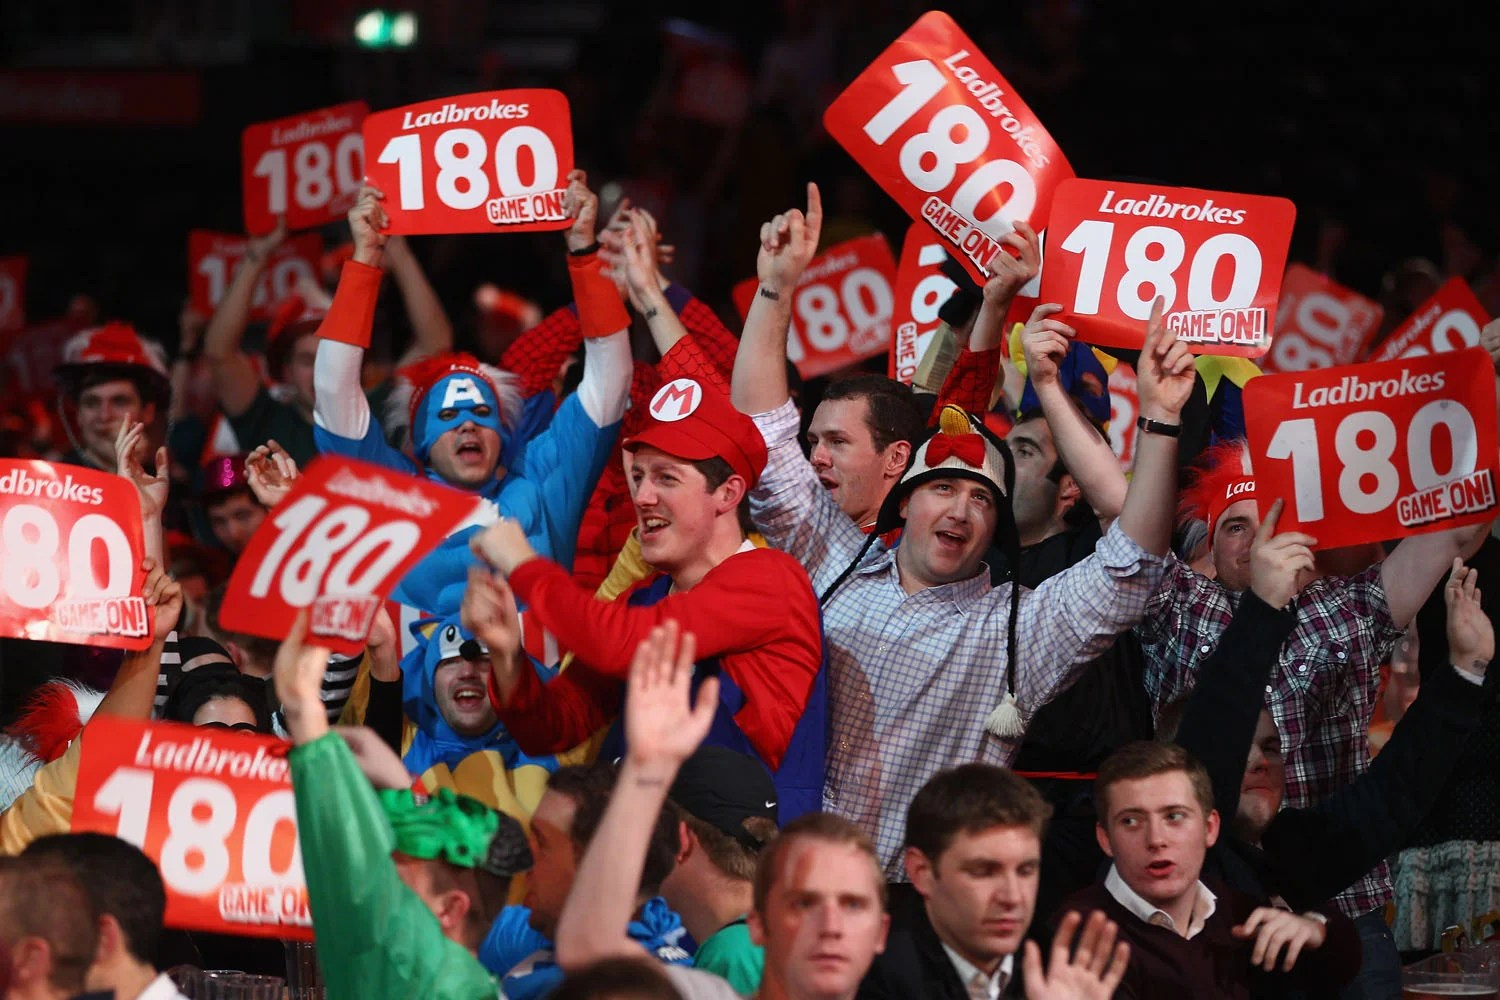 World Darts Championship Tickets On General Sale London